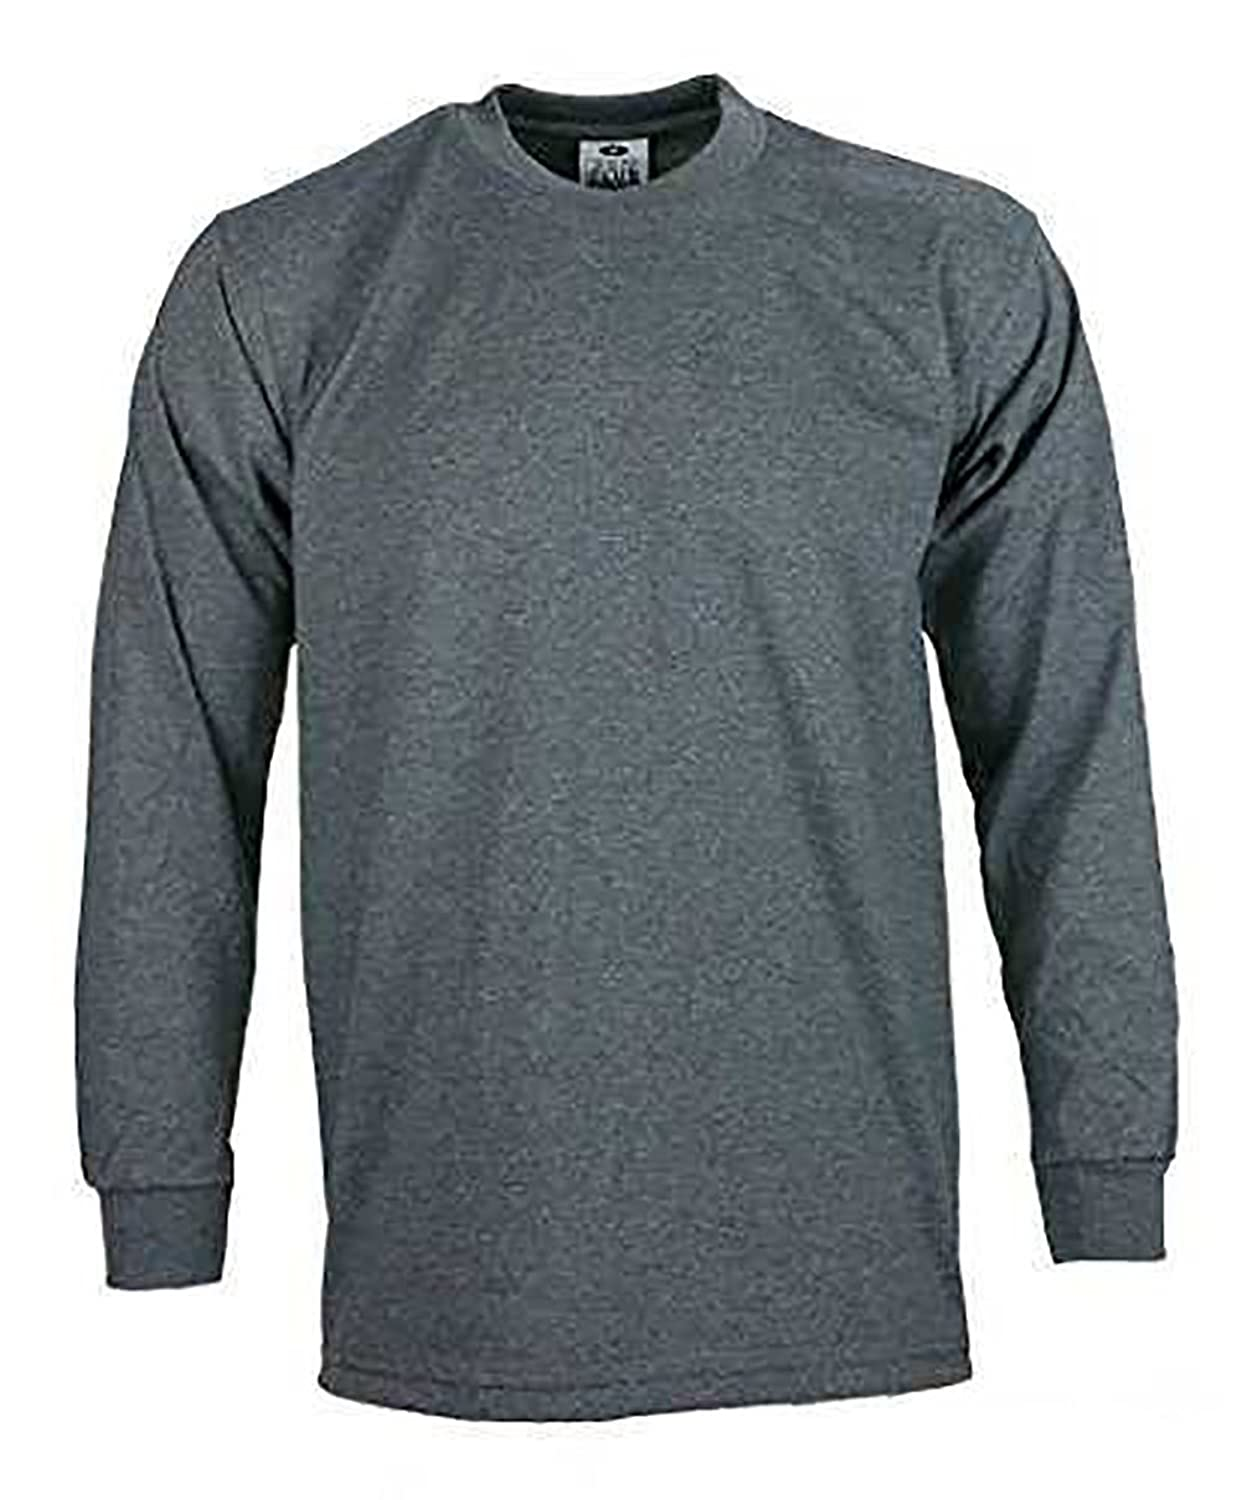 Pack of -2- Men's proclub Heavy Weight solid crewneck long sleeve shirts Charcoal